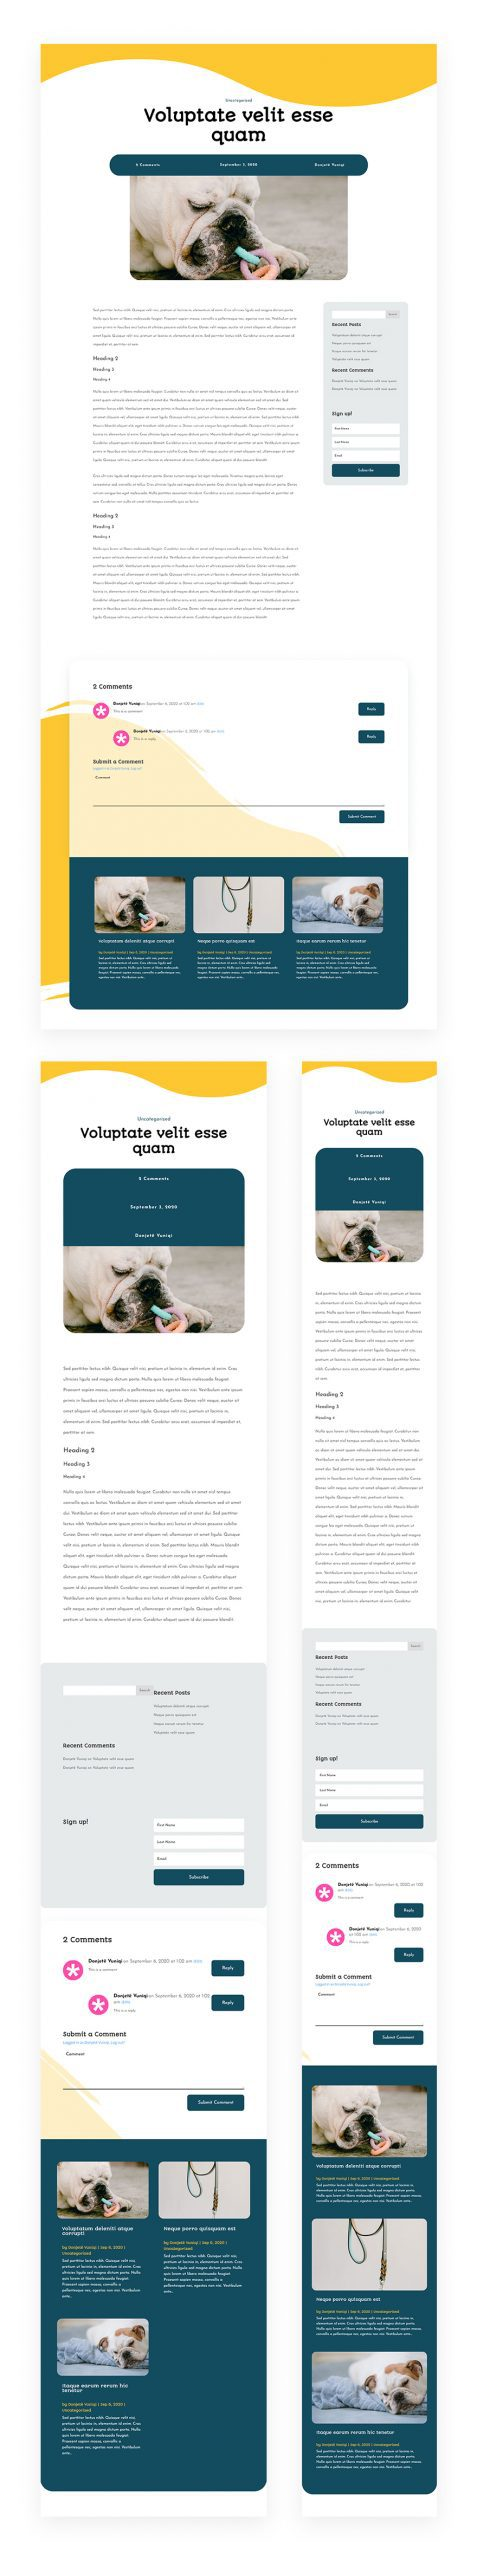 Blog Post Template for Pet Supply Layout